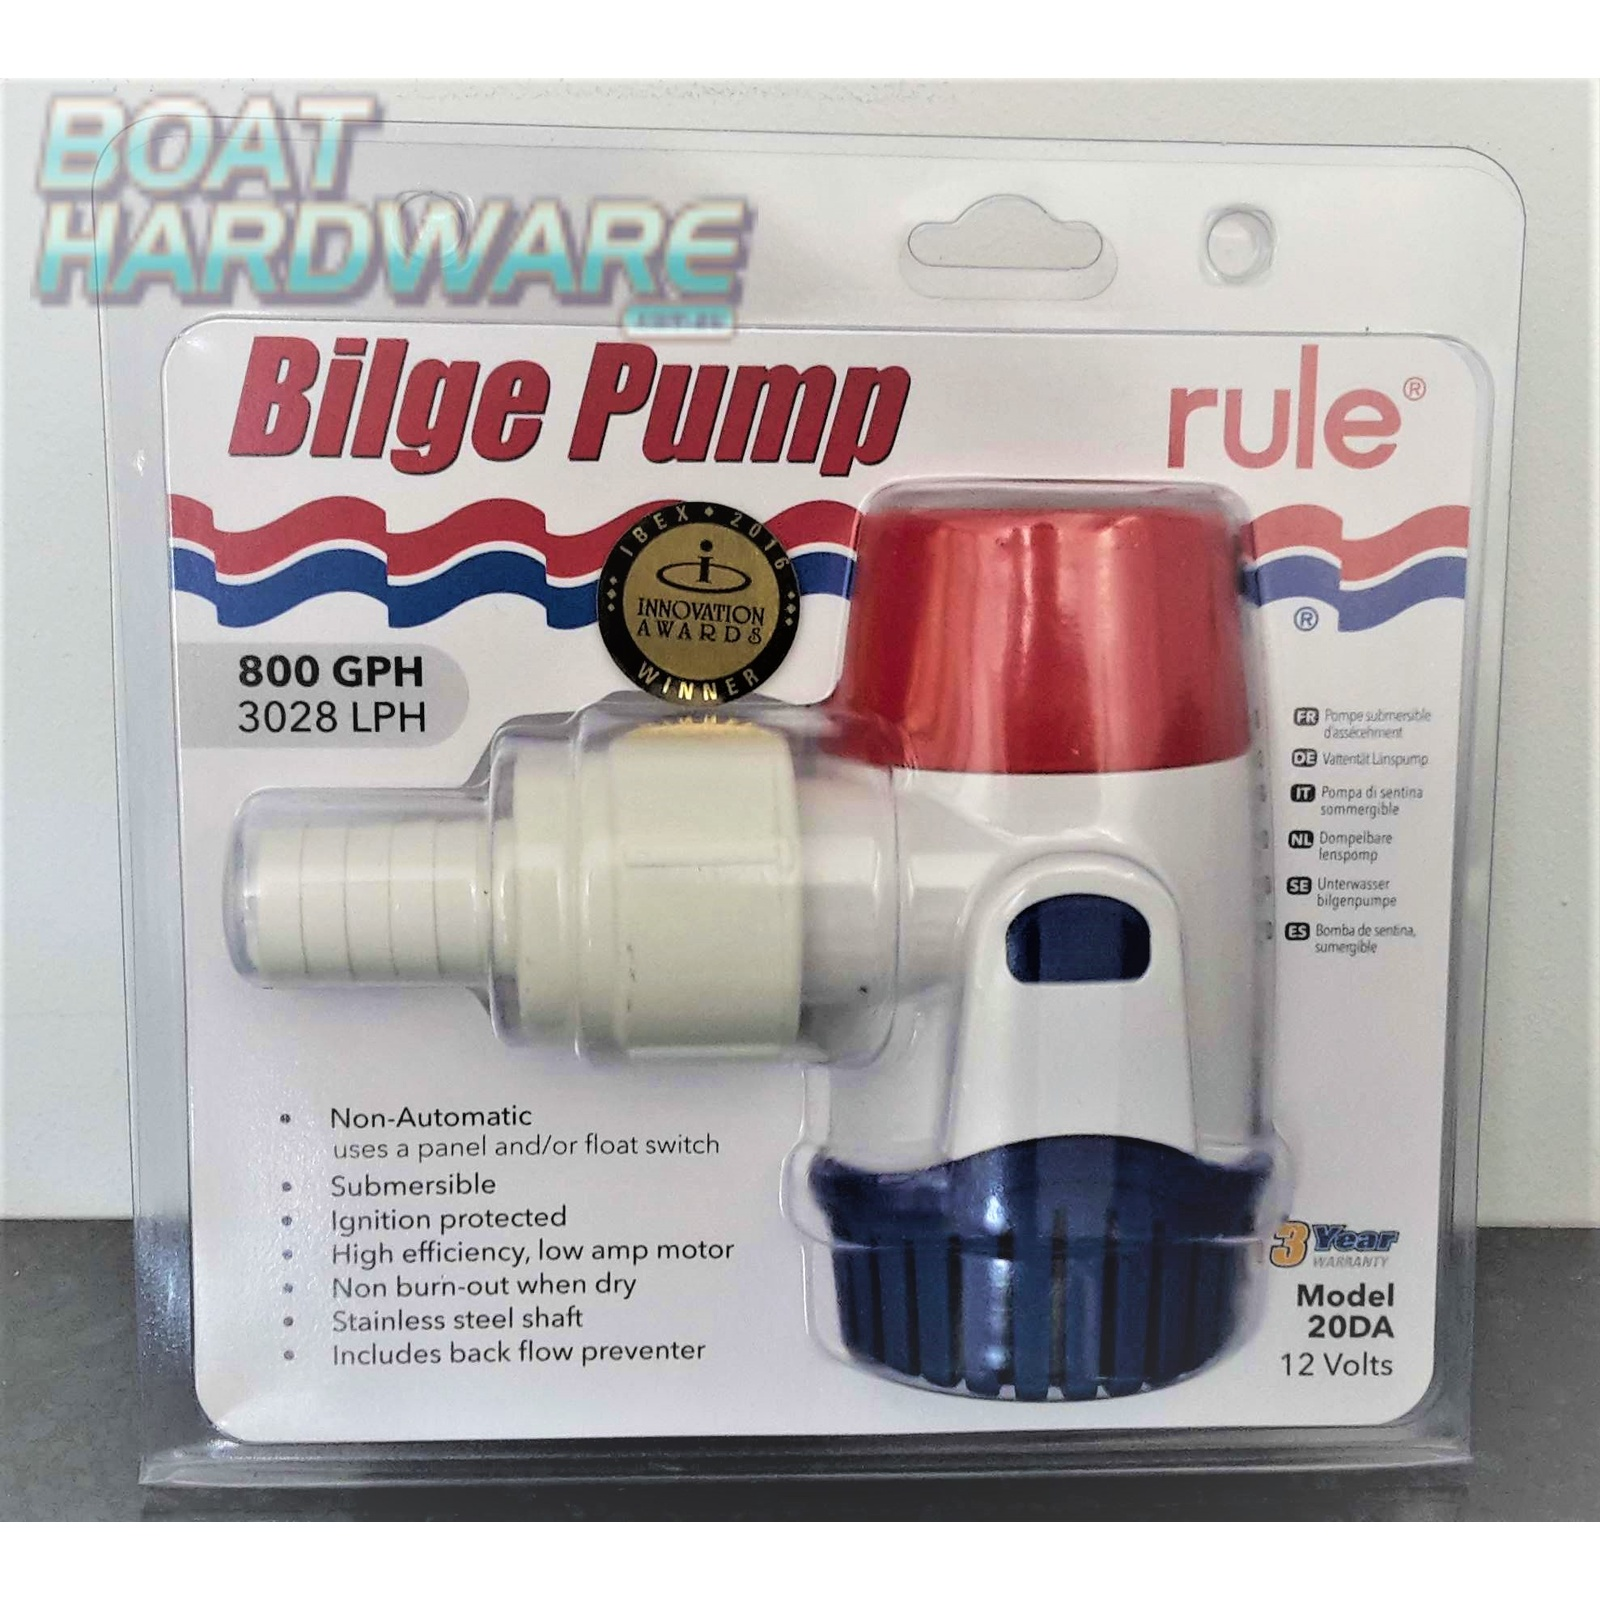 NEW MODEL Rule Electric Bilge Pump 800 GPM